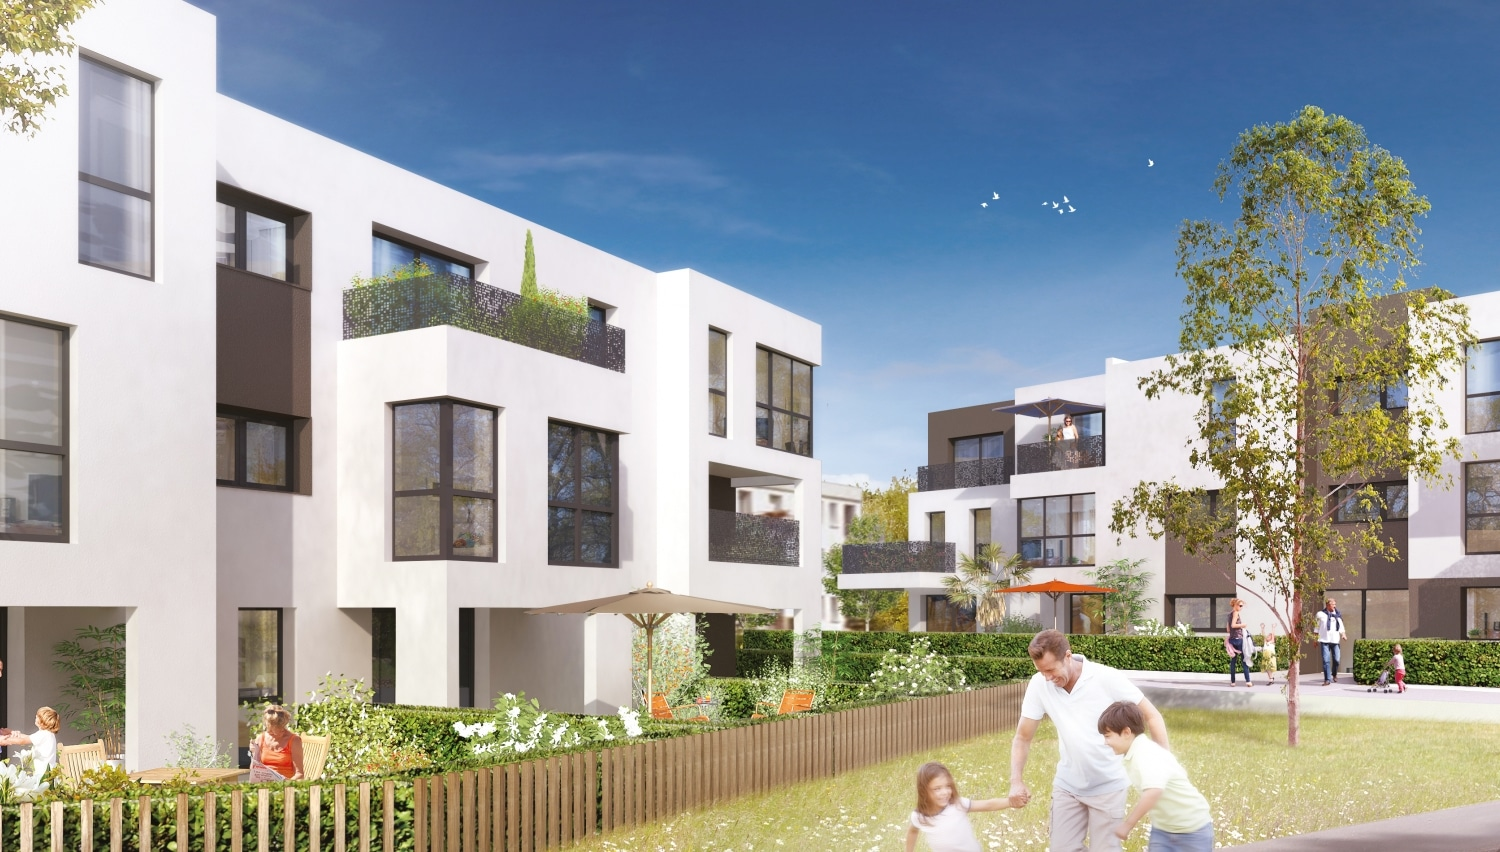 ESPRIT CITY St jacques de la lande | Photo 1/1